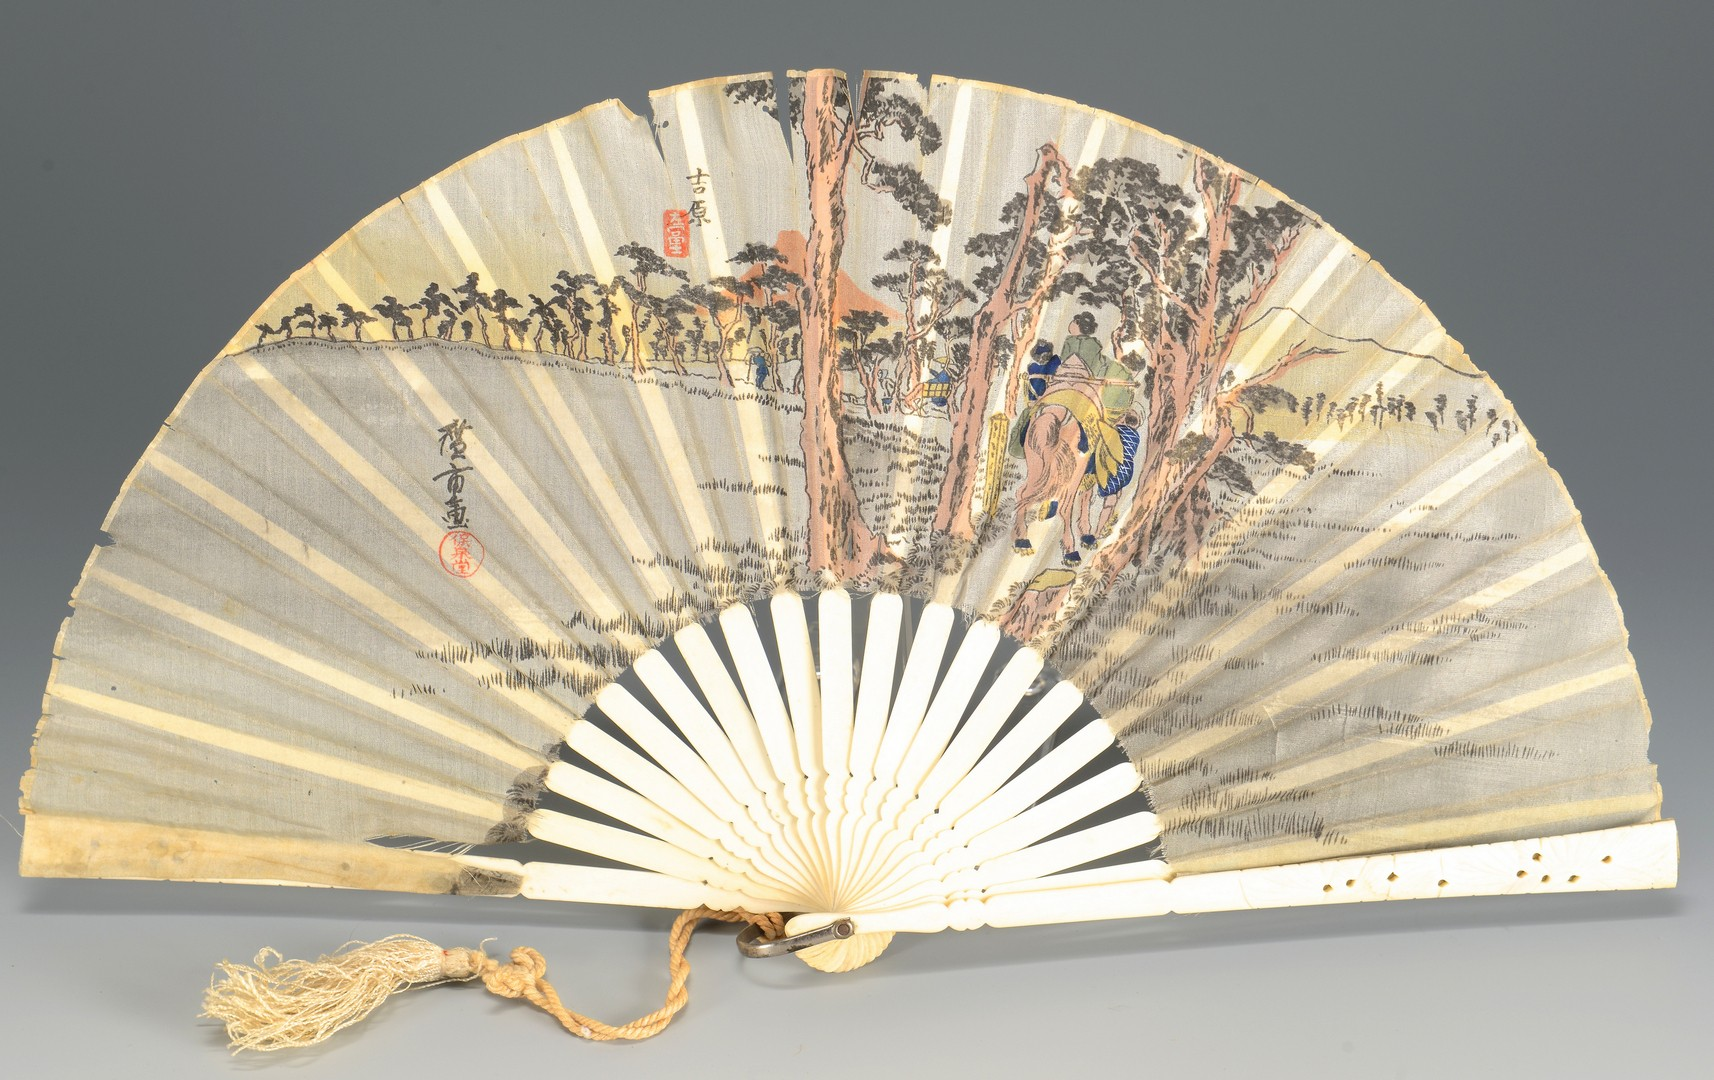 Lot 4010094: Group of 4 Asian items inc. pipe, fan